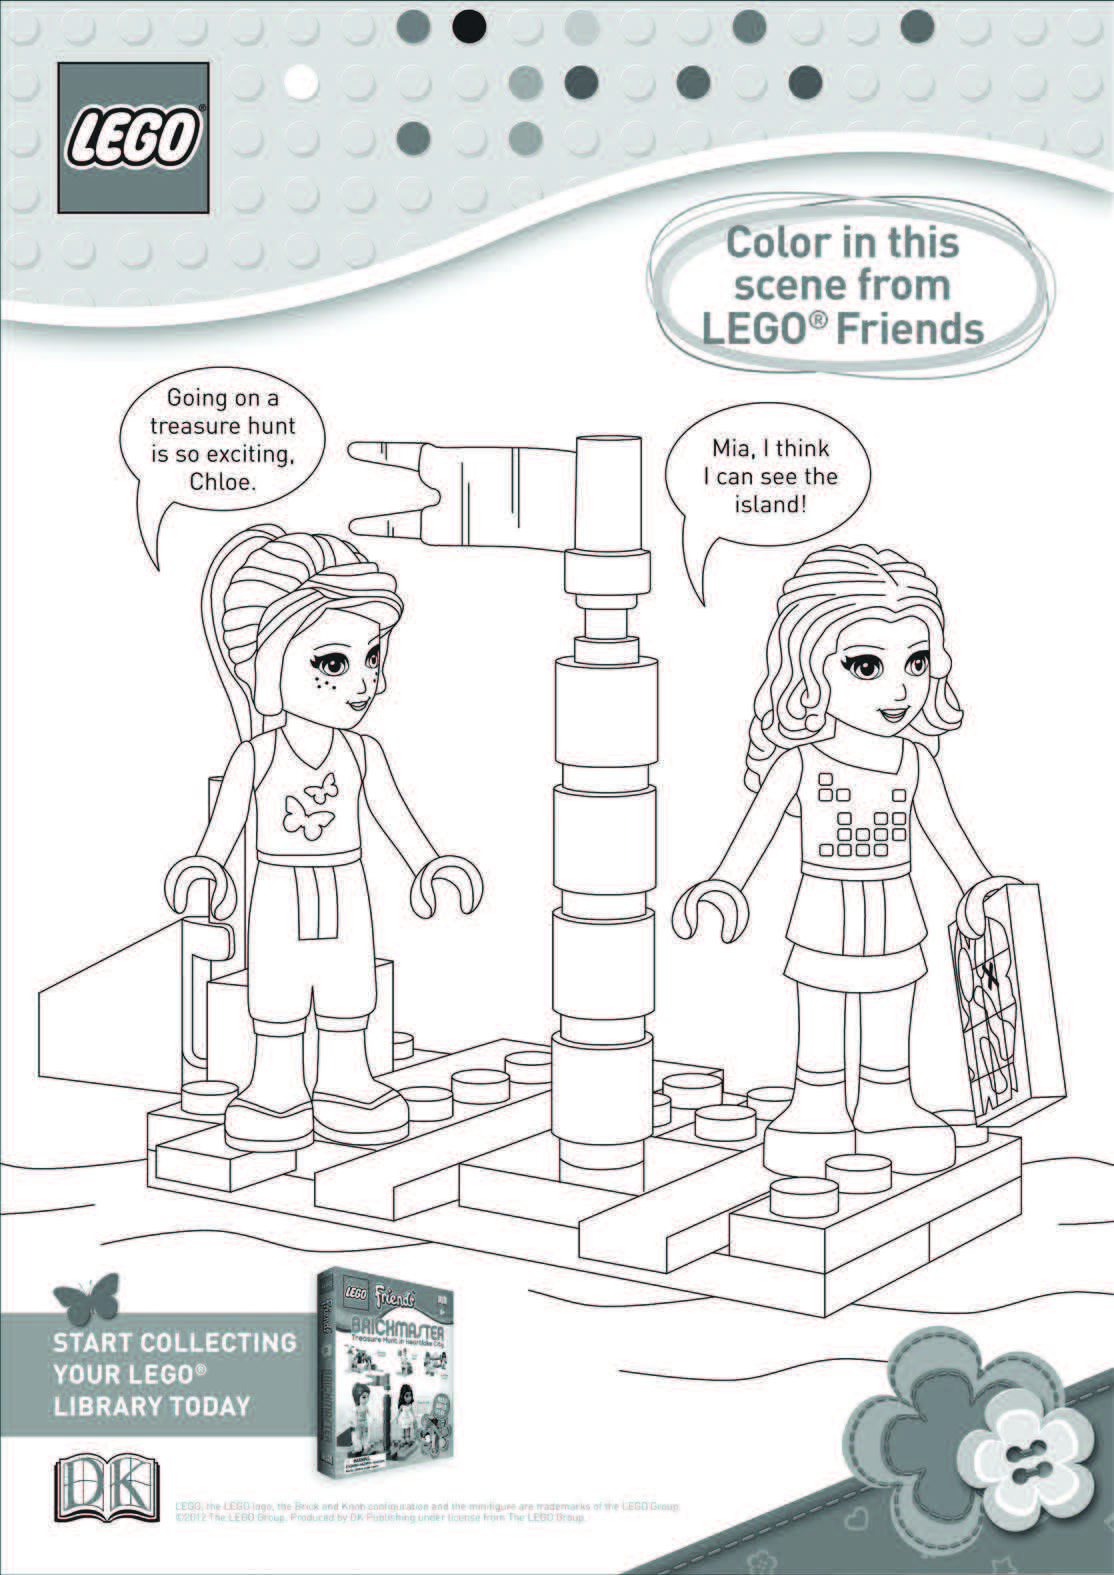 Pin By Ayma Ps On Activity Sheets For Kids Lego Friends Birthday Party Lego Friends Party Lego Friends Birthday